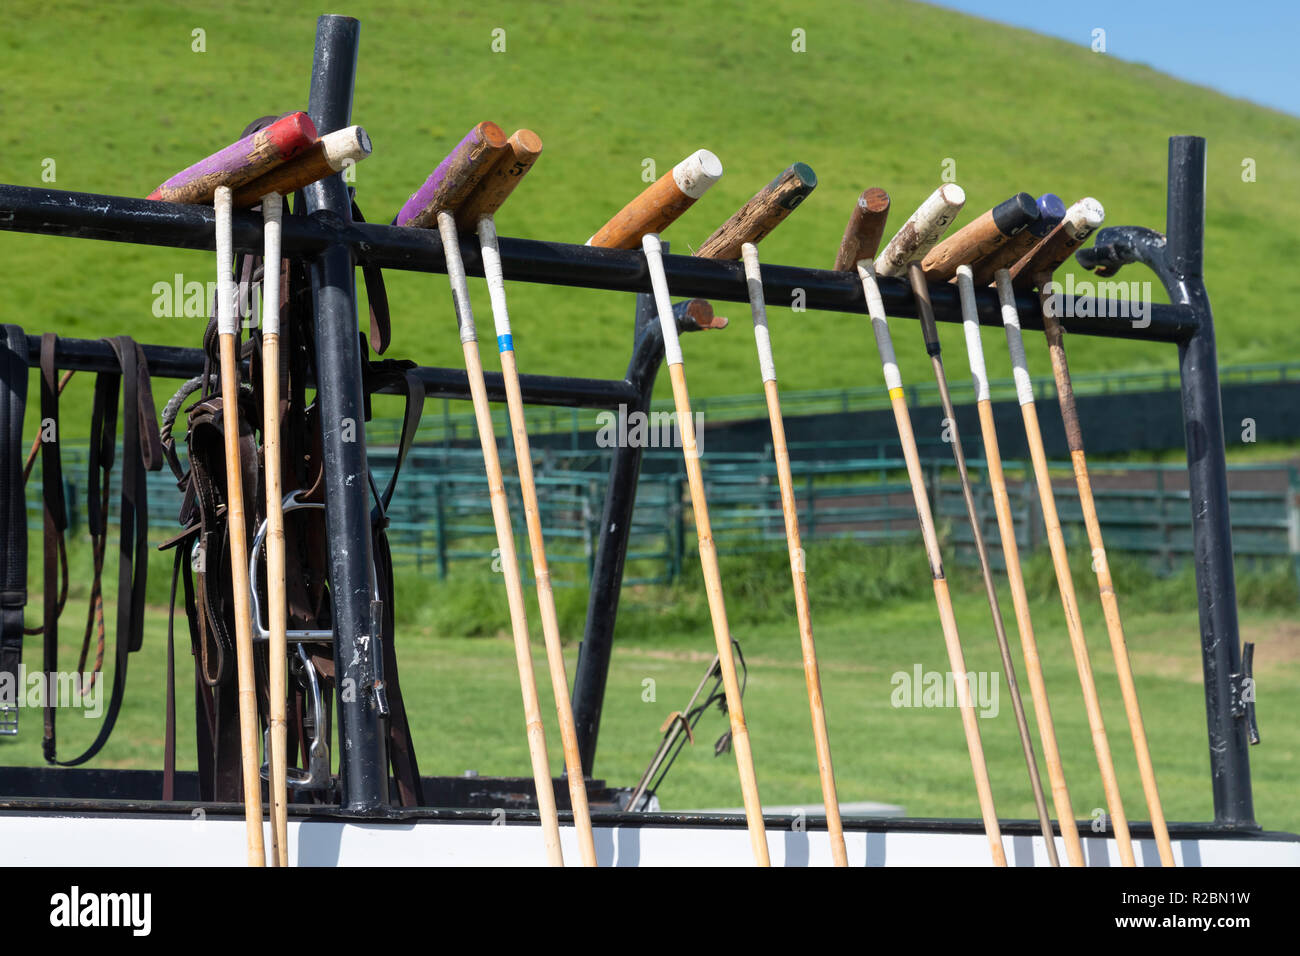 Waikii, Hawaii - Polo mallets on a truck at the Mauna Kea Polo Club. The club plays Sunday afternoons on the slopes of the dormant volcano, Mauna Kea. - Stock Image